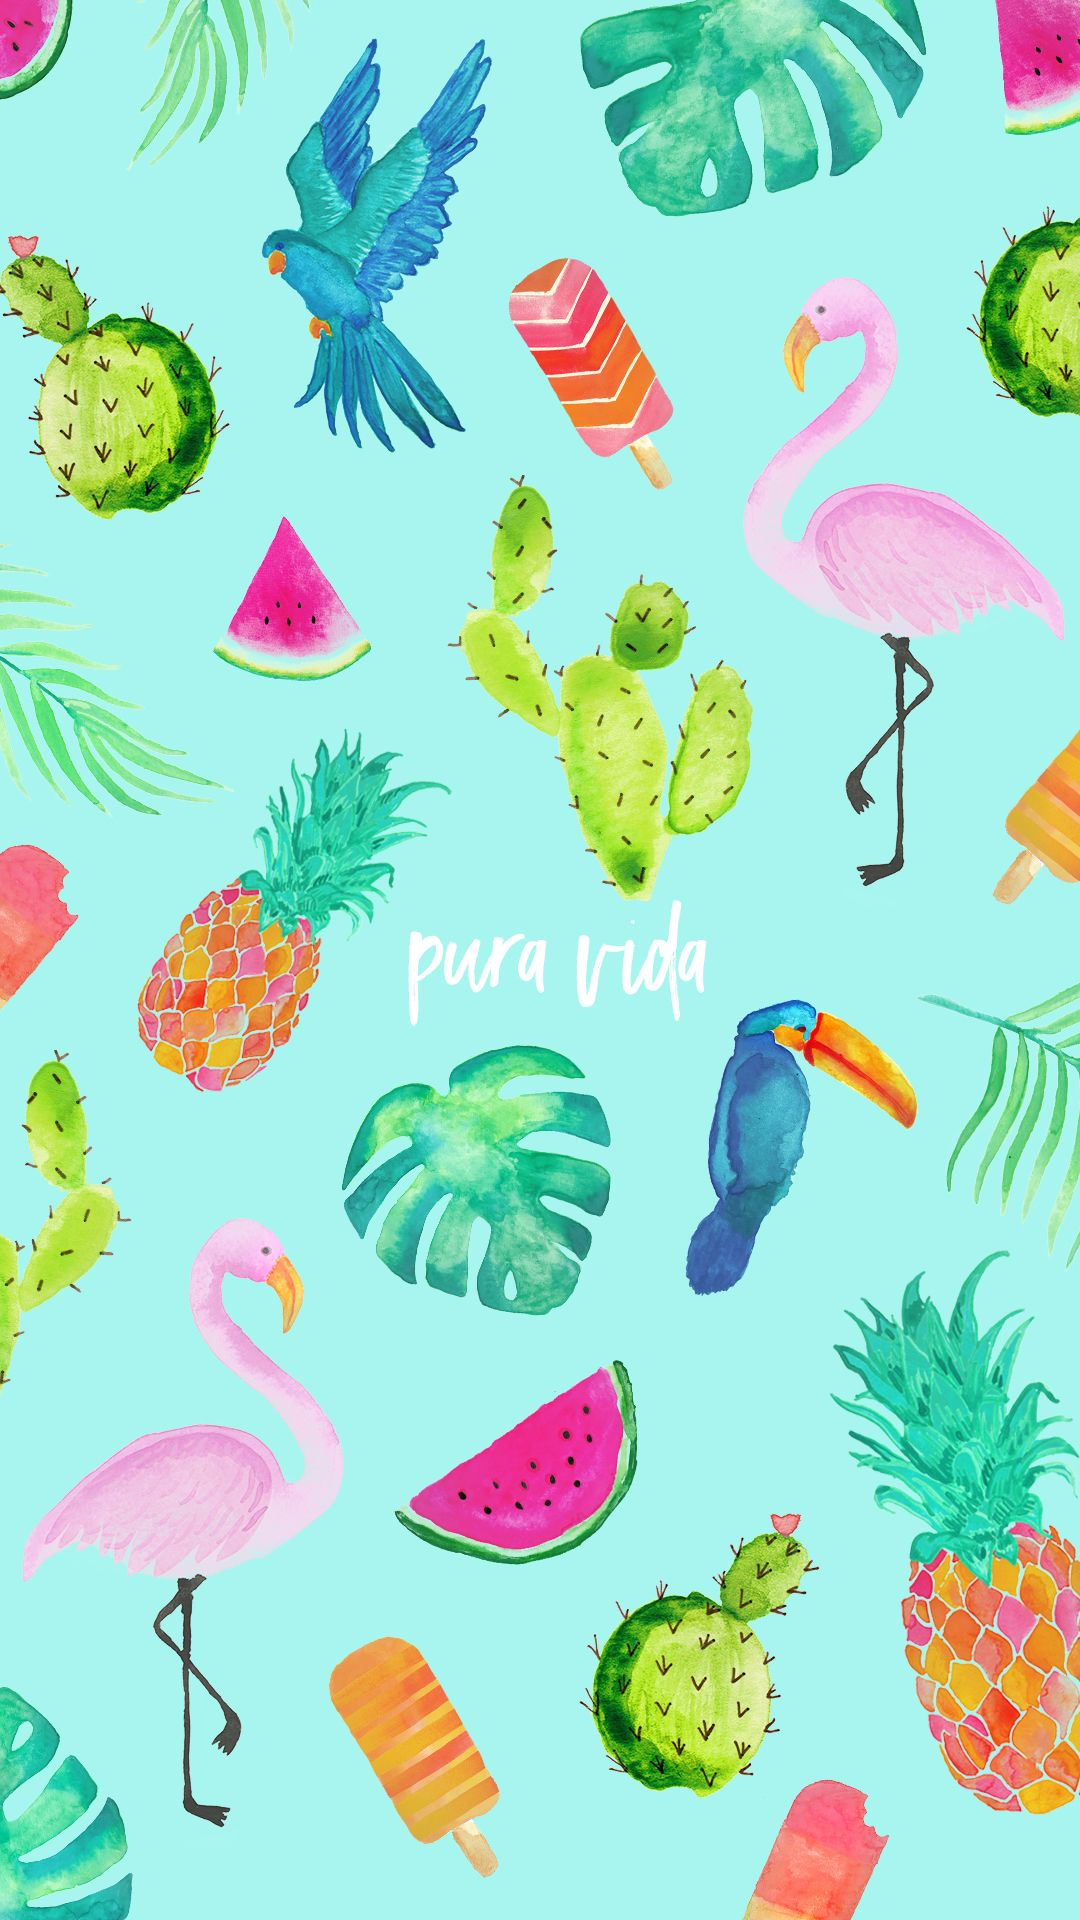 Libro Pura Vida The Pura Vida Bracelets Blog Summer Digi Downloads かべが